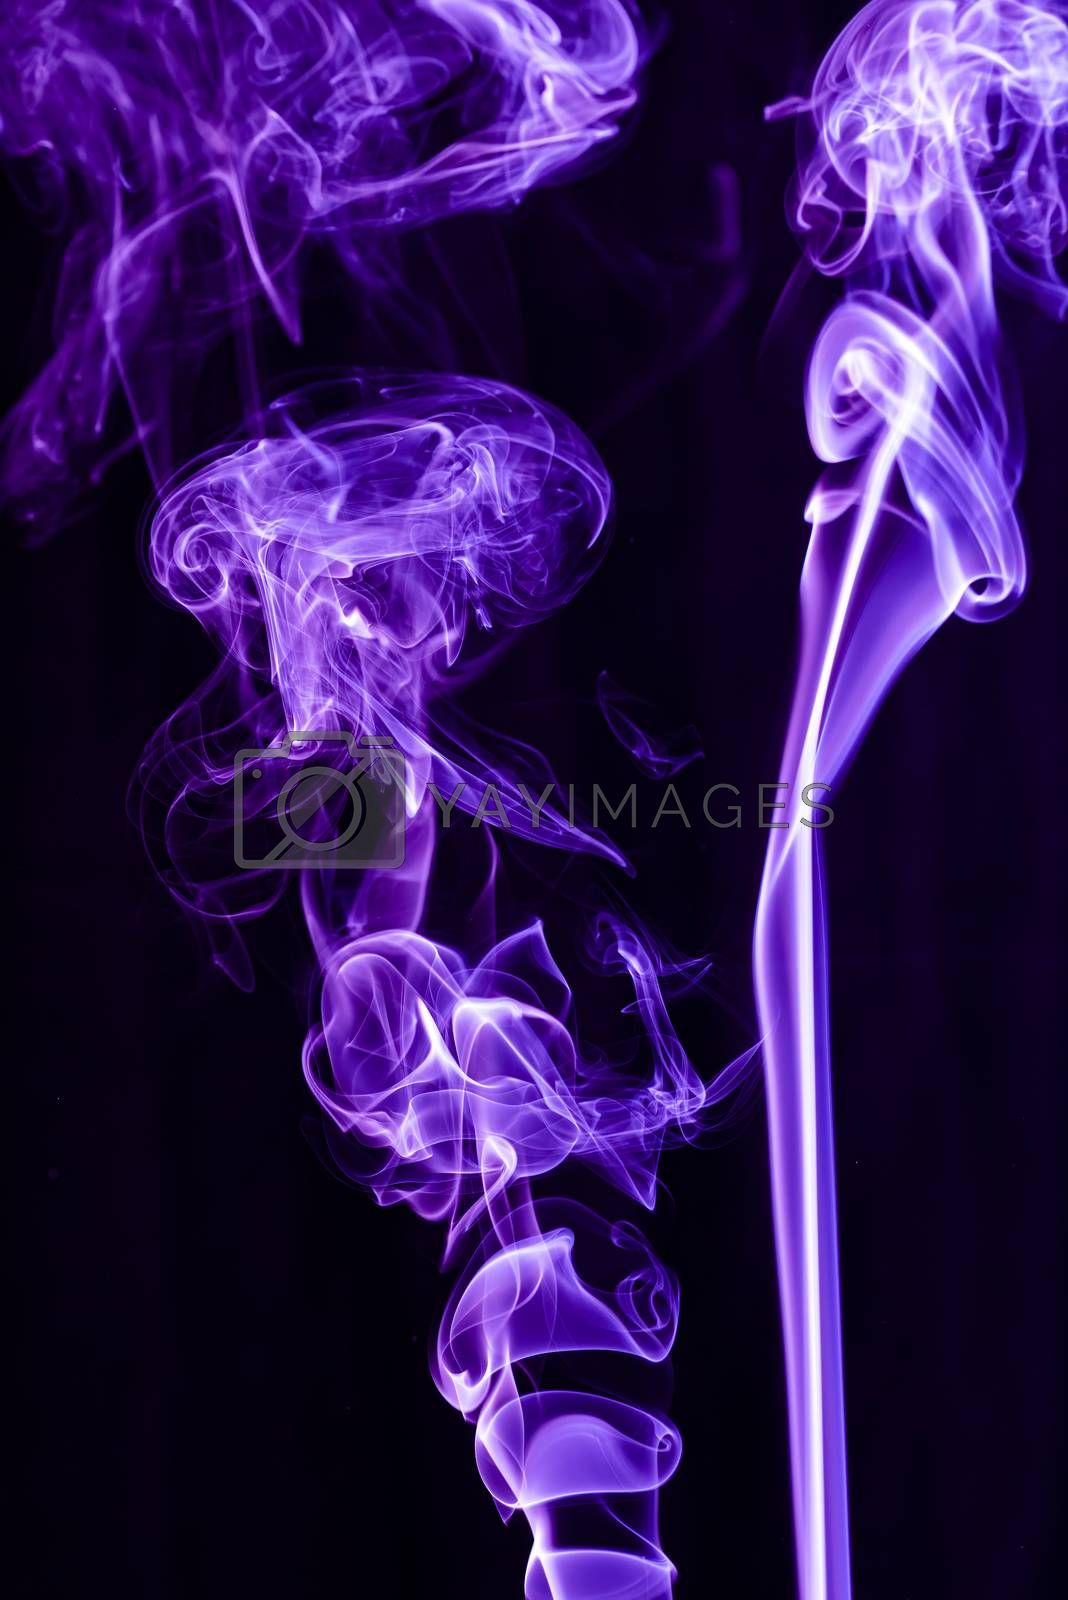 Violet abstract shaped smoke against black background. Abstract background. Selective focus